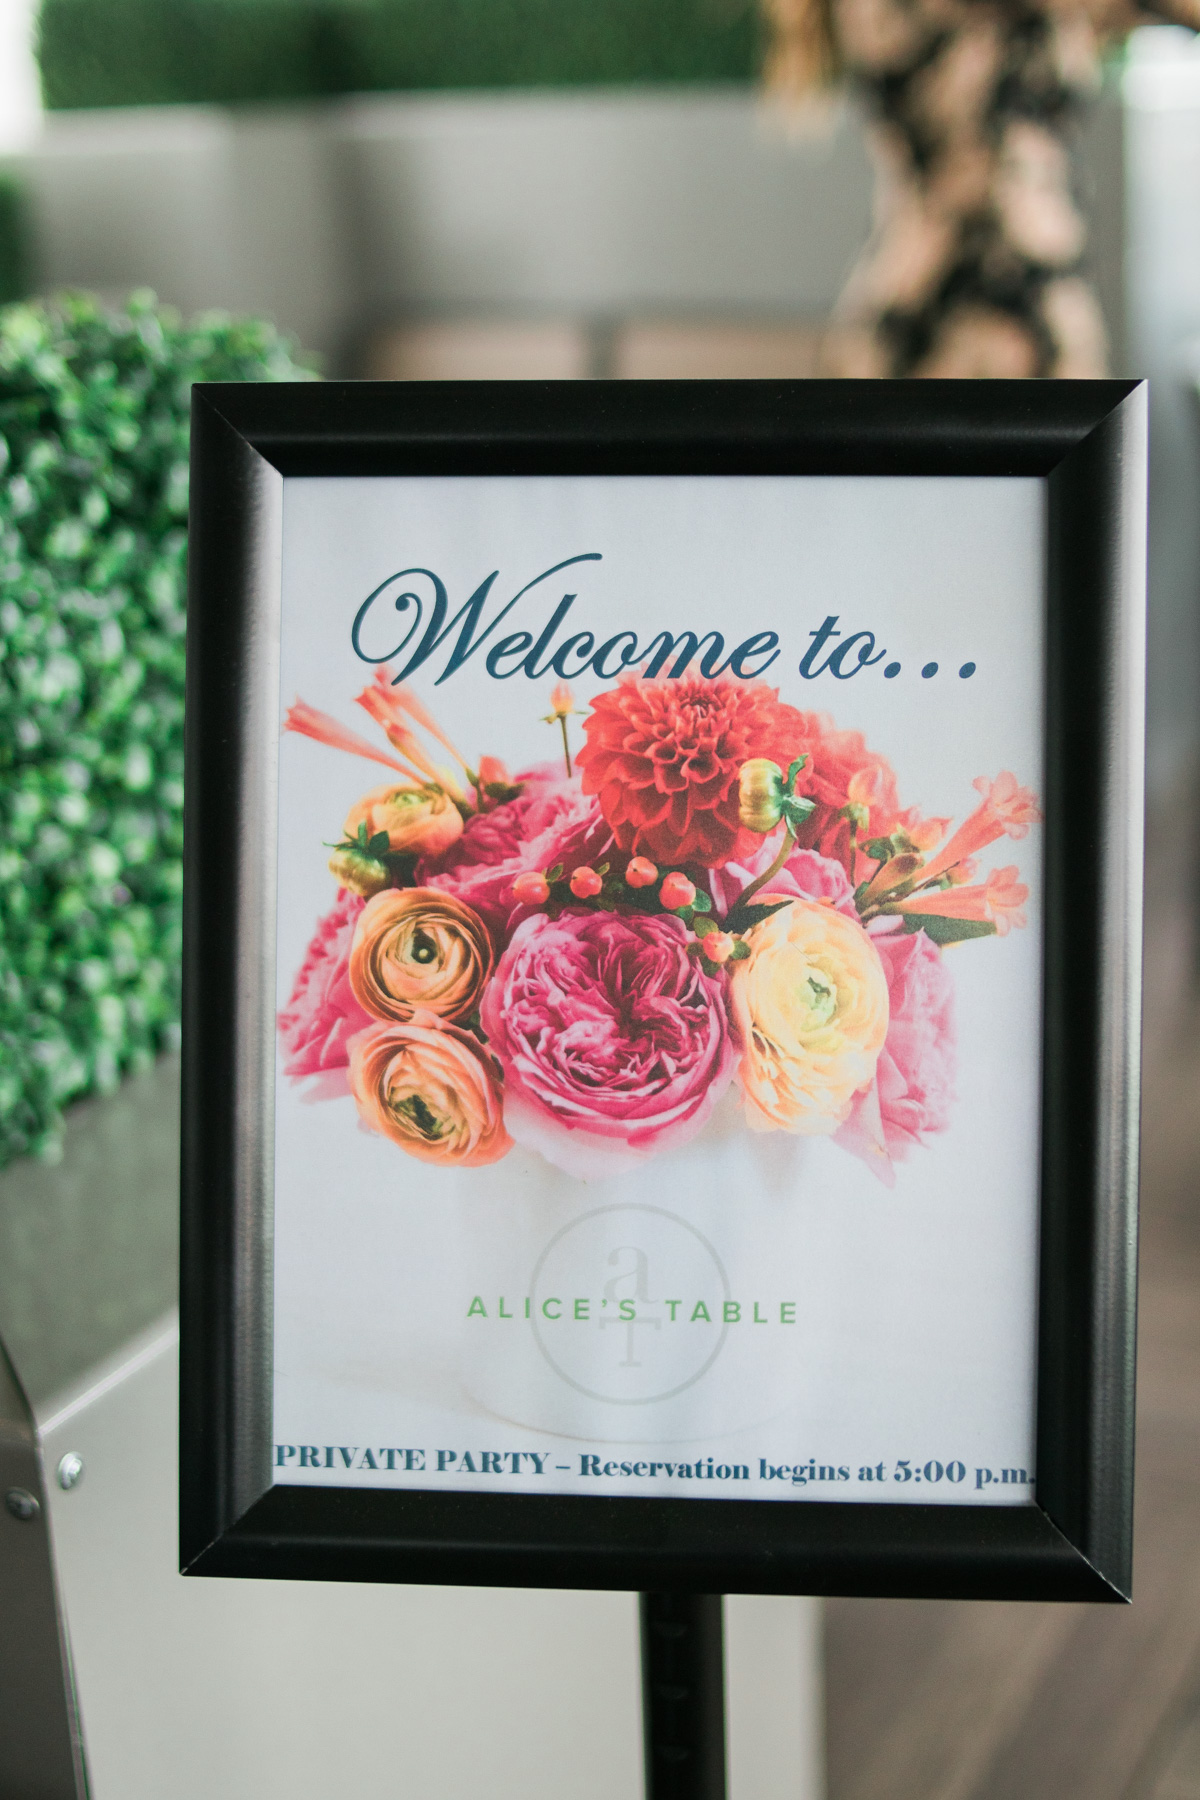 sign with flowers and text: Welcome to Alice's Table - Private Party - Reservation begins at 5:00pm